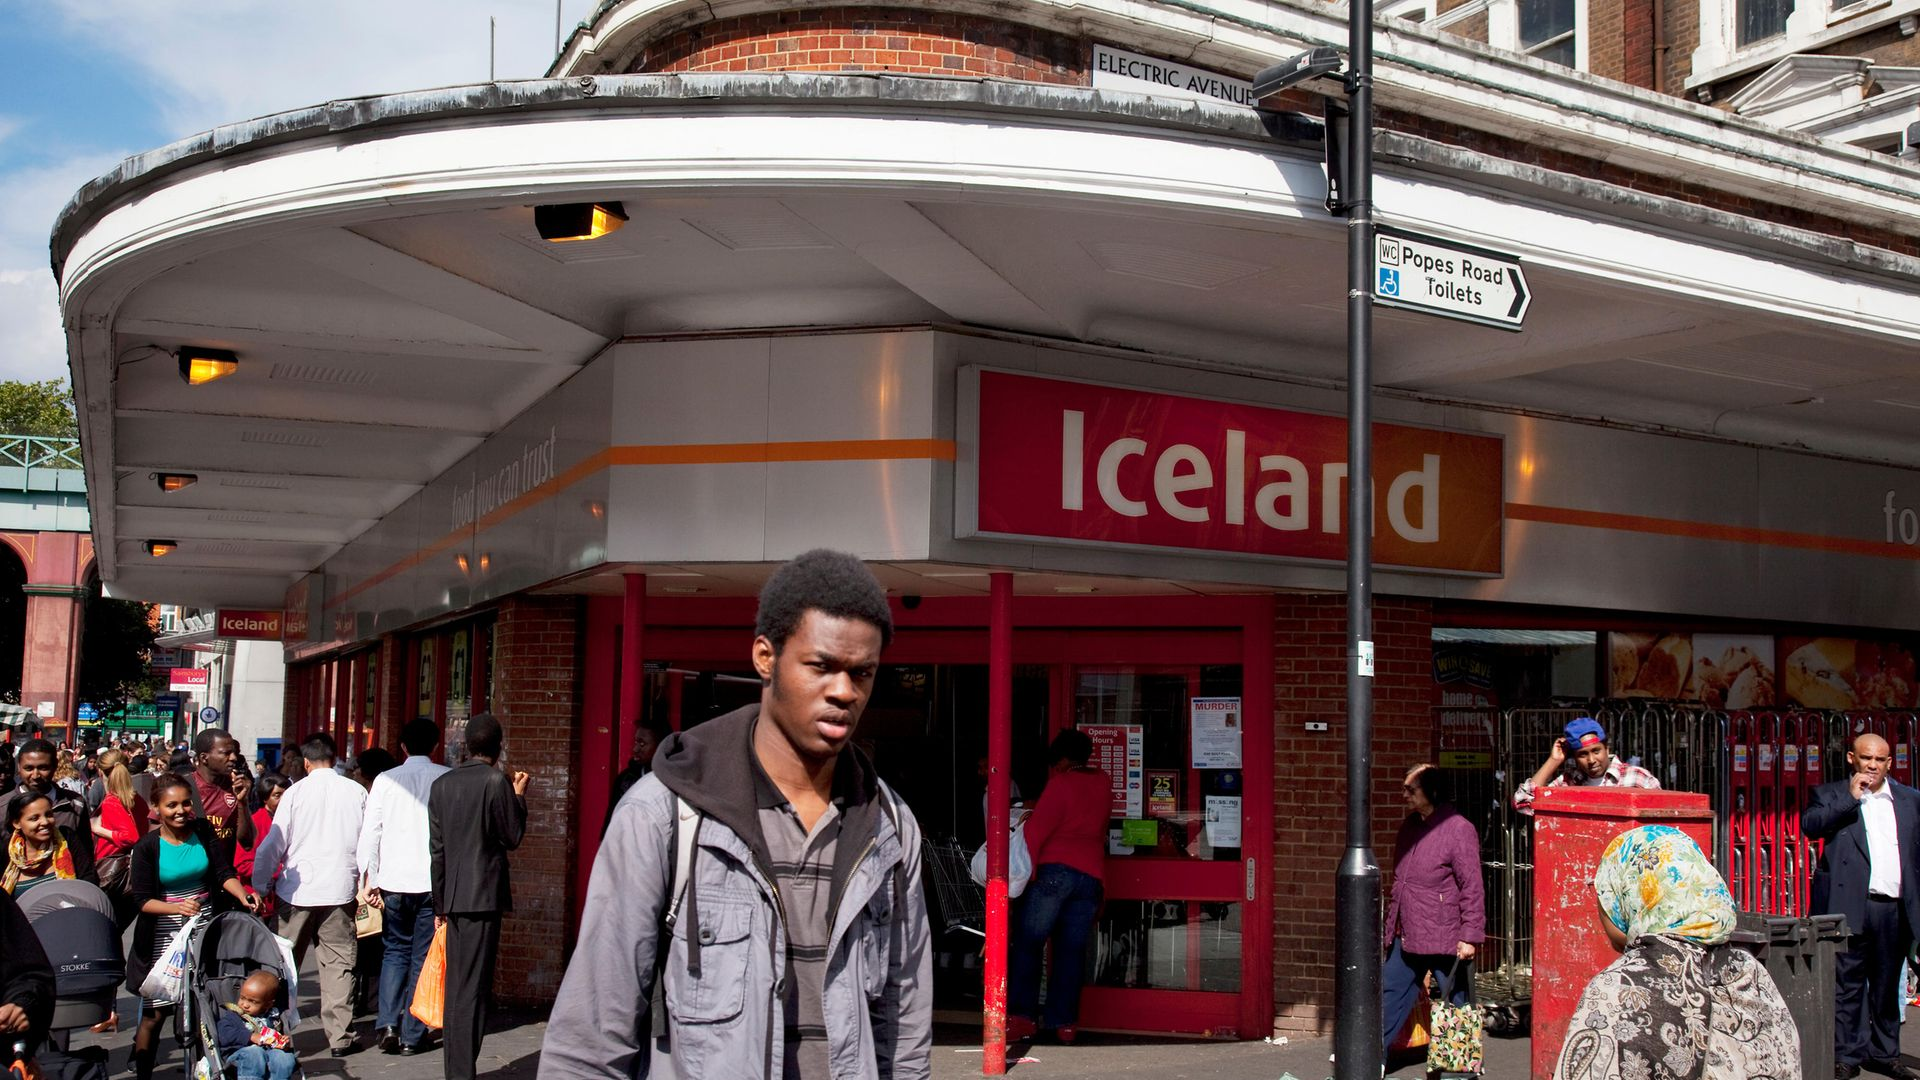 The Iceland supermarket on the corner of Electric Avenue, where Will Self's artwork is displayed - Credit: Corbis via Getty Images